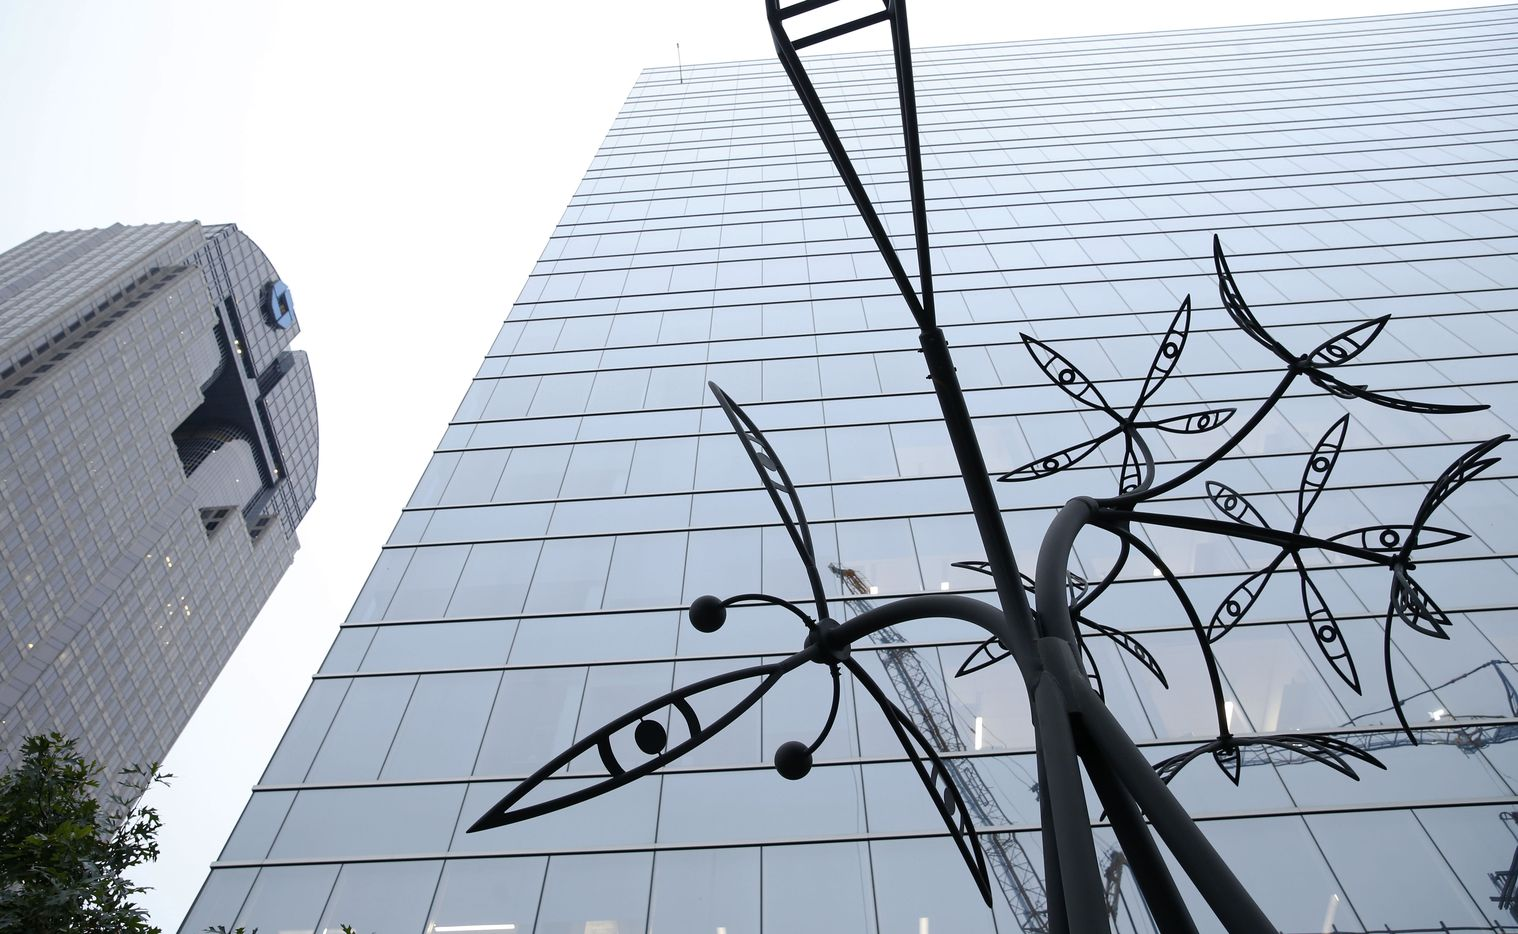 Again in the Meadow by James Surls is on display at KPMG Plaza at Hall Arts in the Arts District in Dallas.